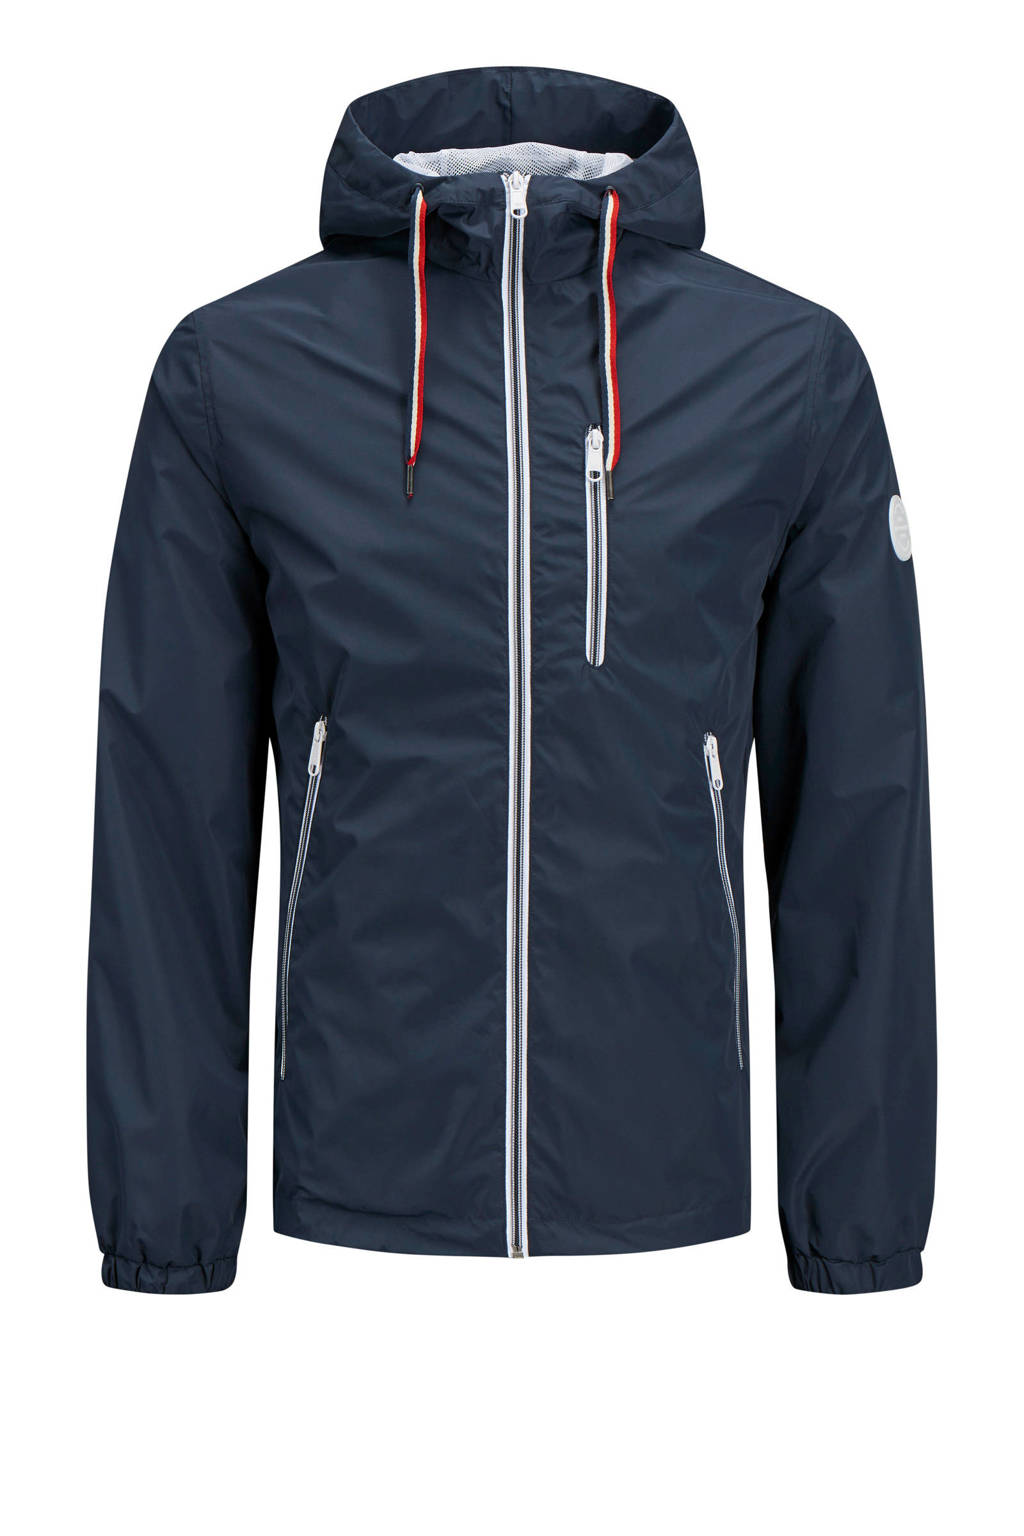 Jack & Jones Originals jas met capuchon, Marine